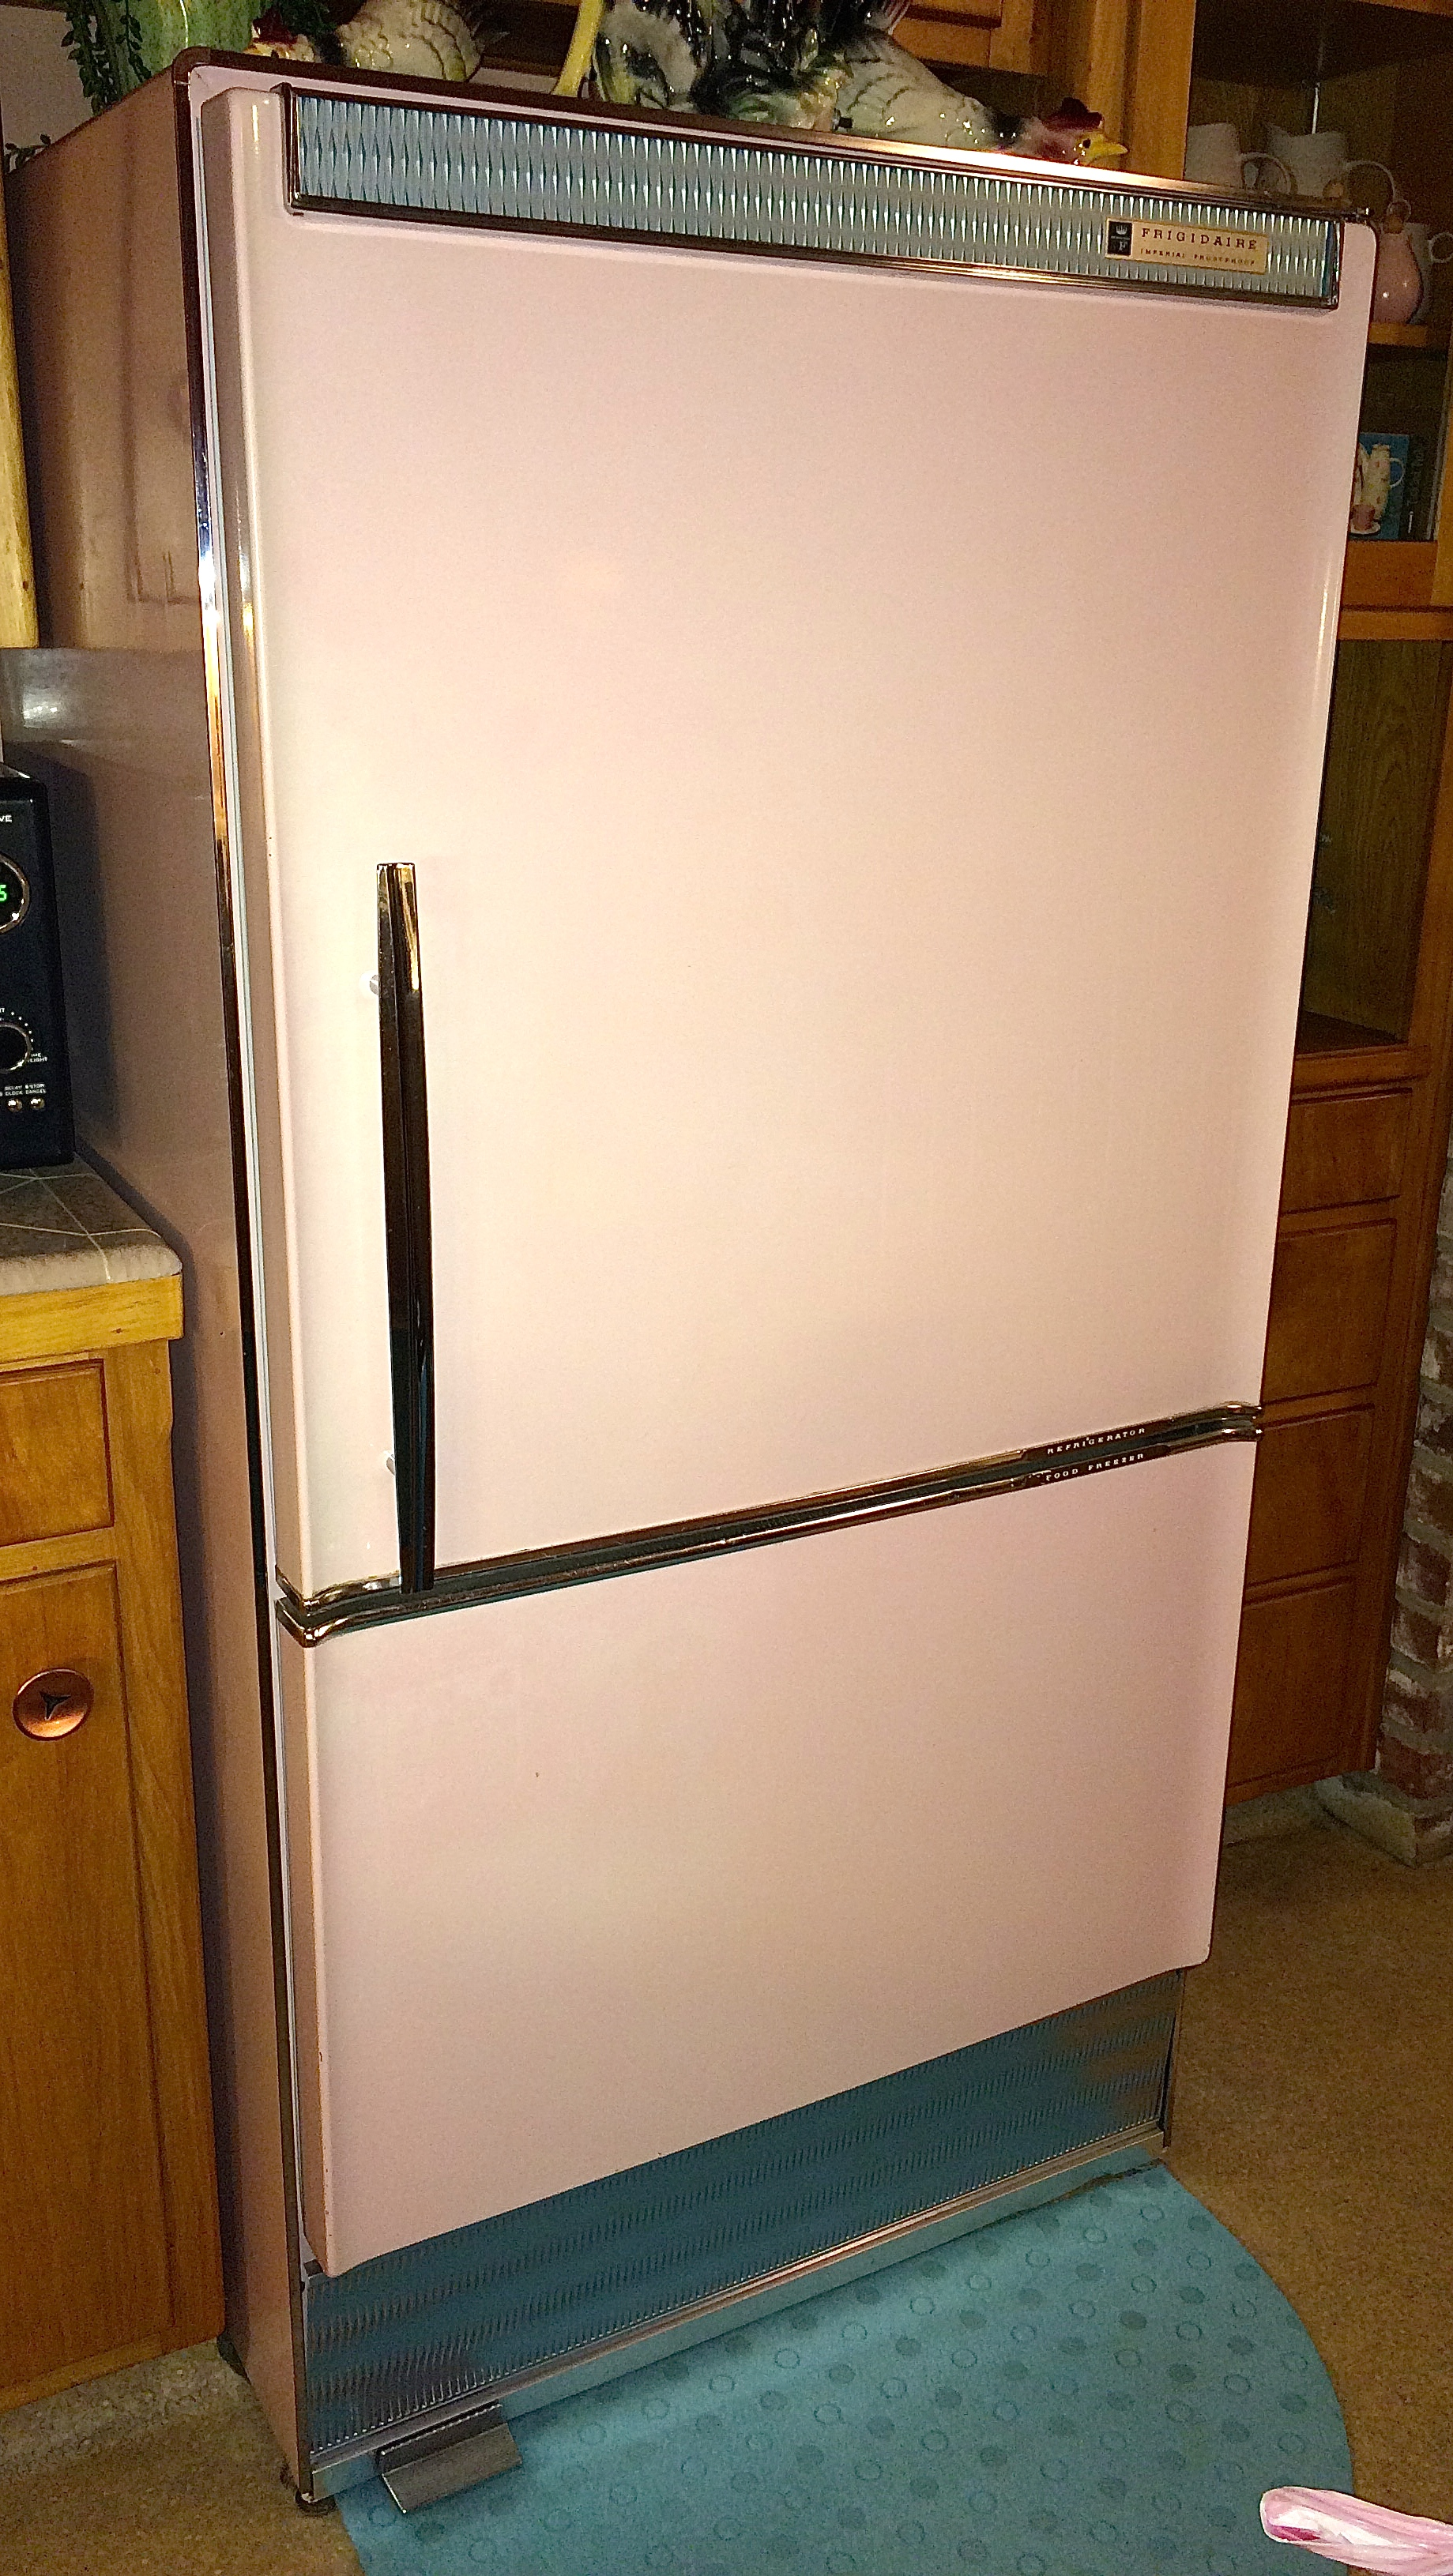 Find A Vintage Refrigerator To Put In The Kitchen We Couldnt See Modern One Looking Right As Usual I Was Cruising Craigslist And Came